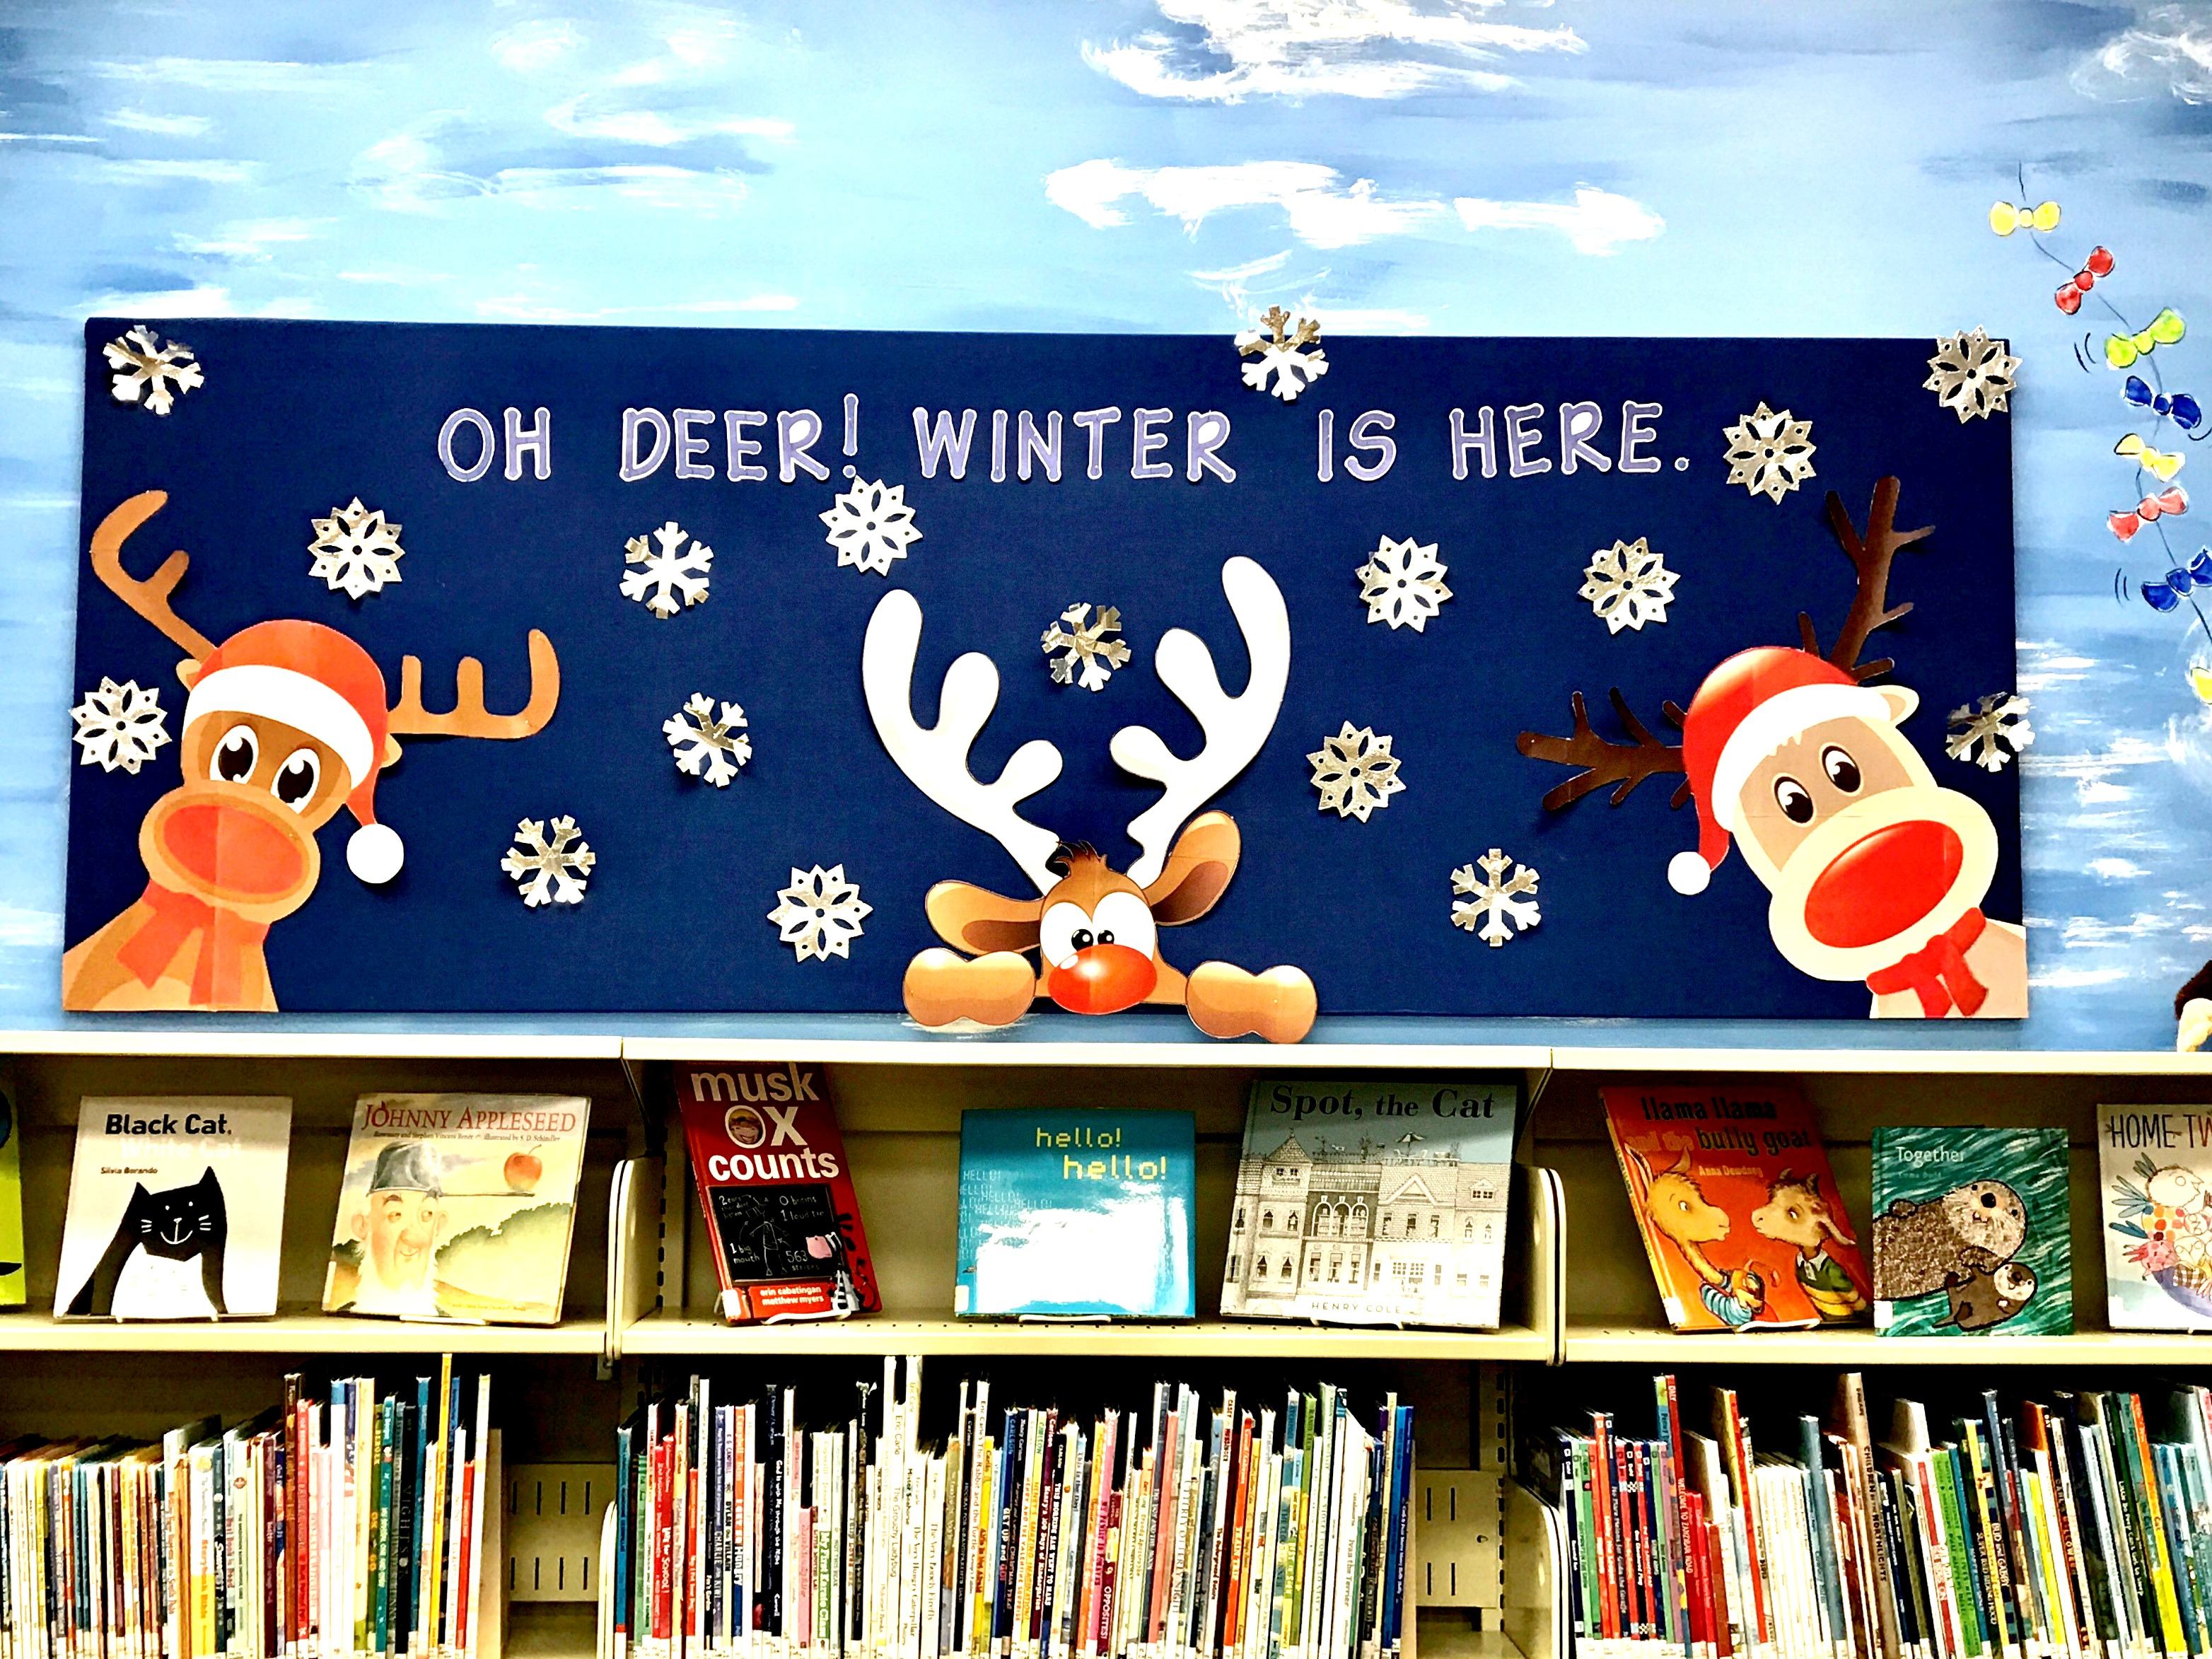 exceptional Winter Bulletin Board Ideas For Teachers Part - 19: Winter bulletin board ideas for teachers! I have rounded up so fun winter -themed